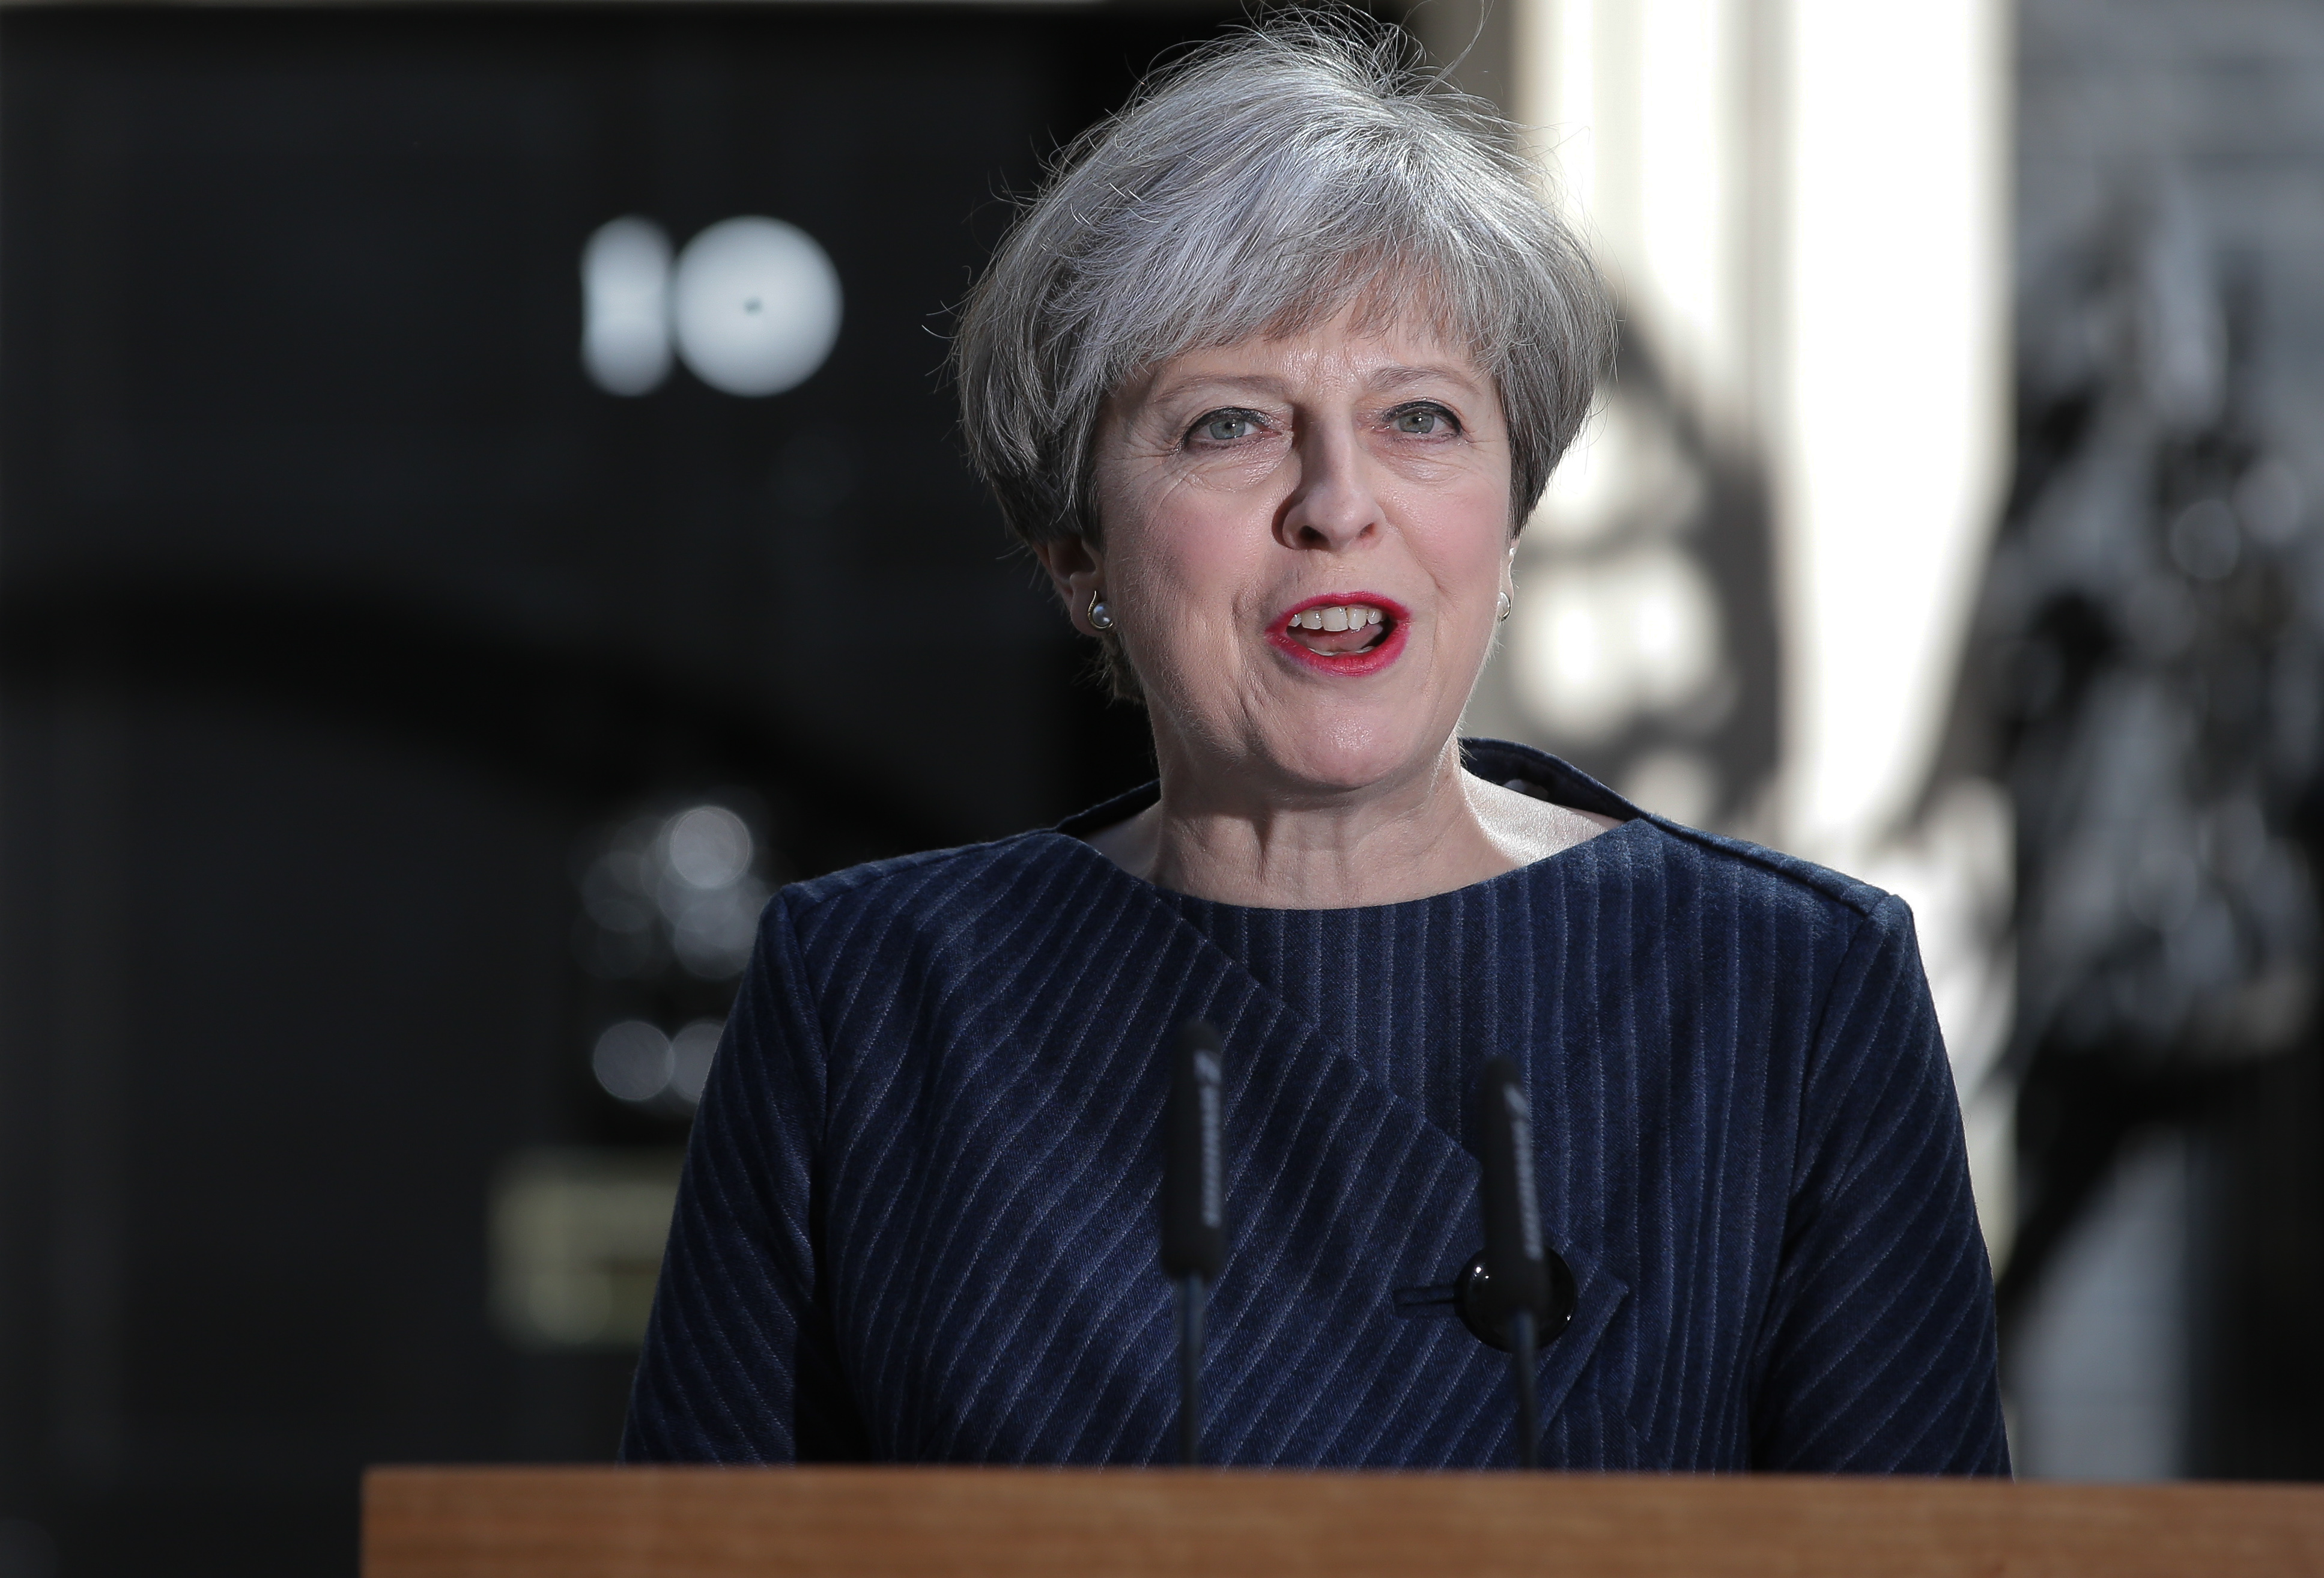 British Prime Minister Theresa May outside 10 Downing Street in central London on April 18, 2017.